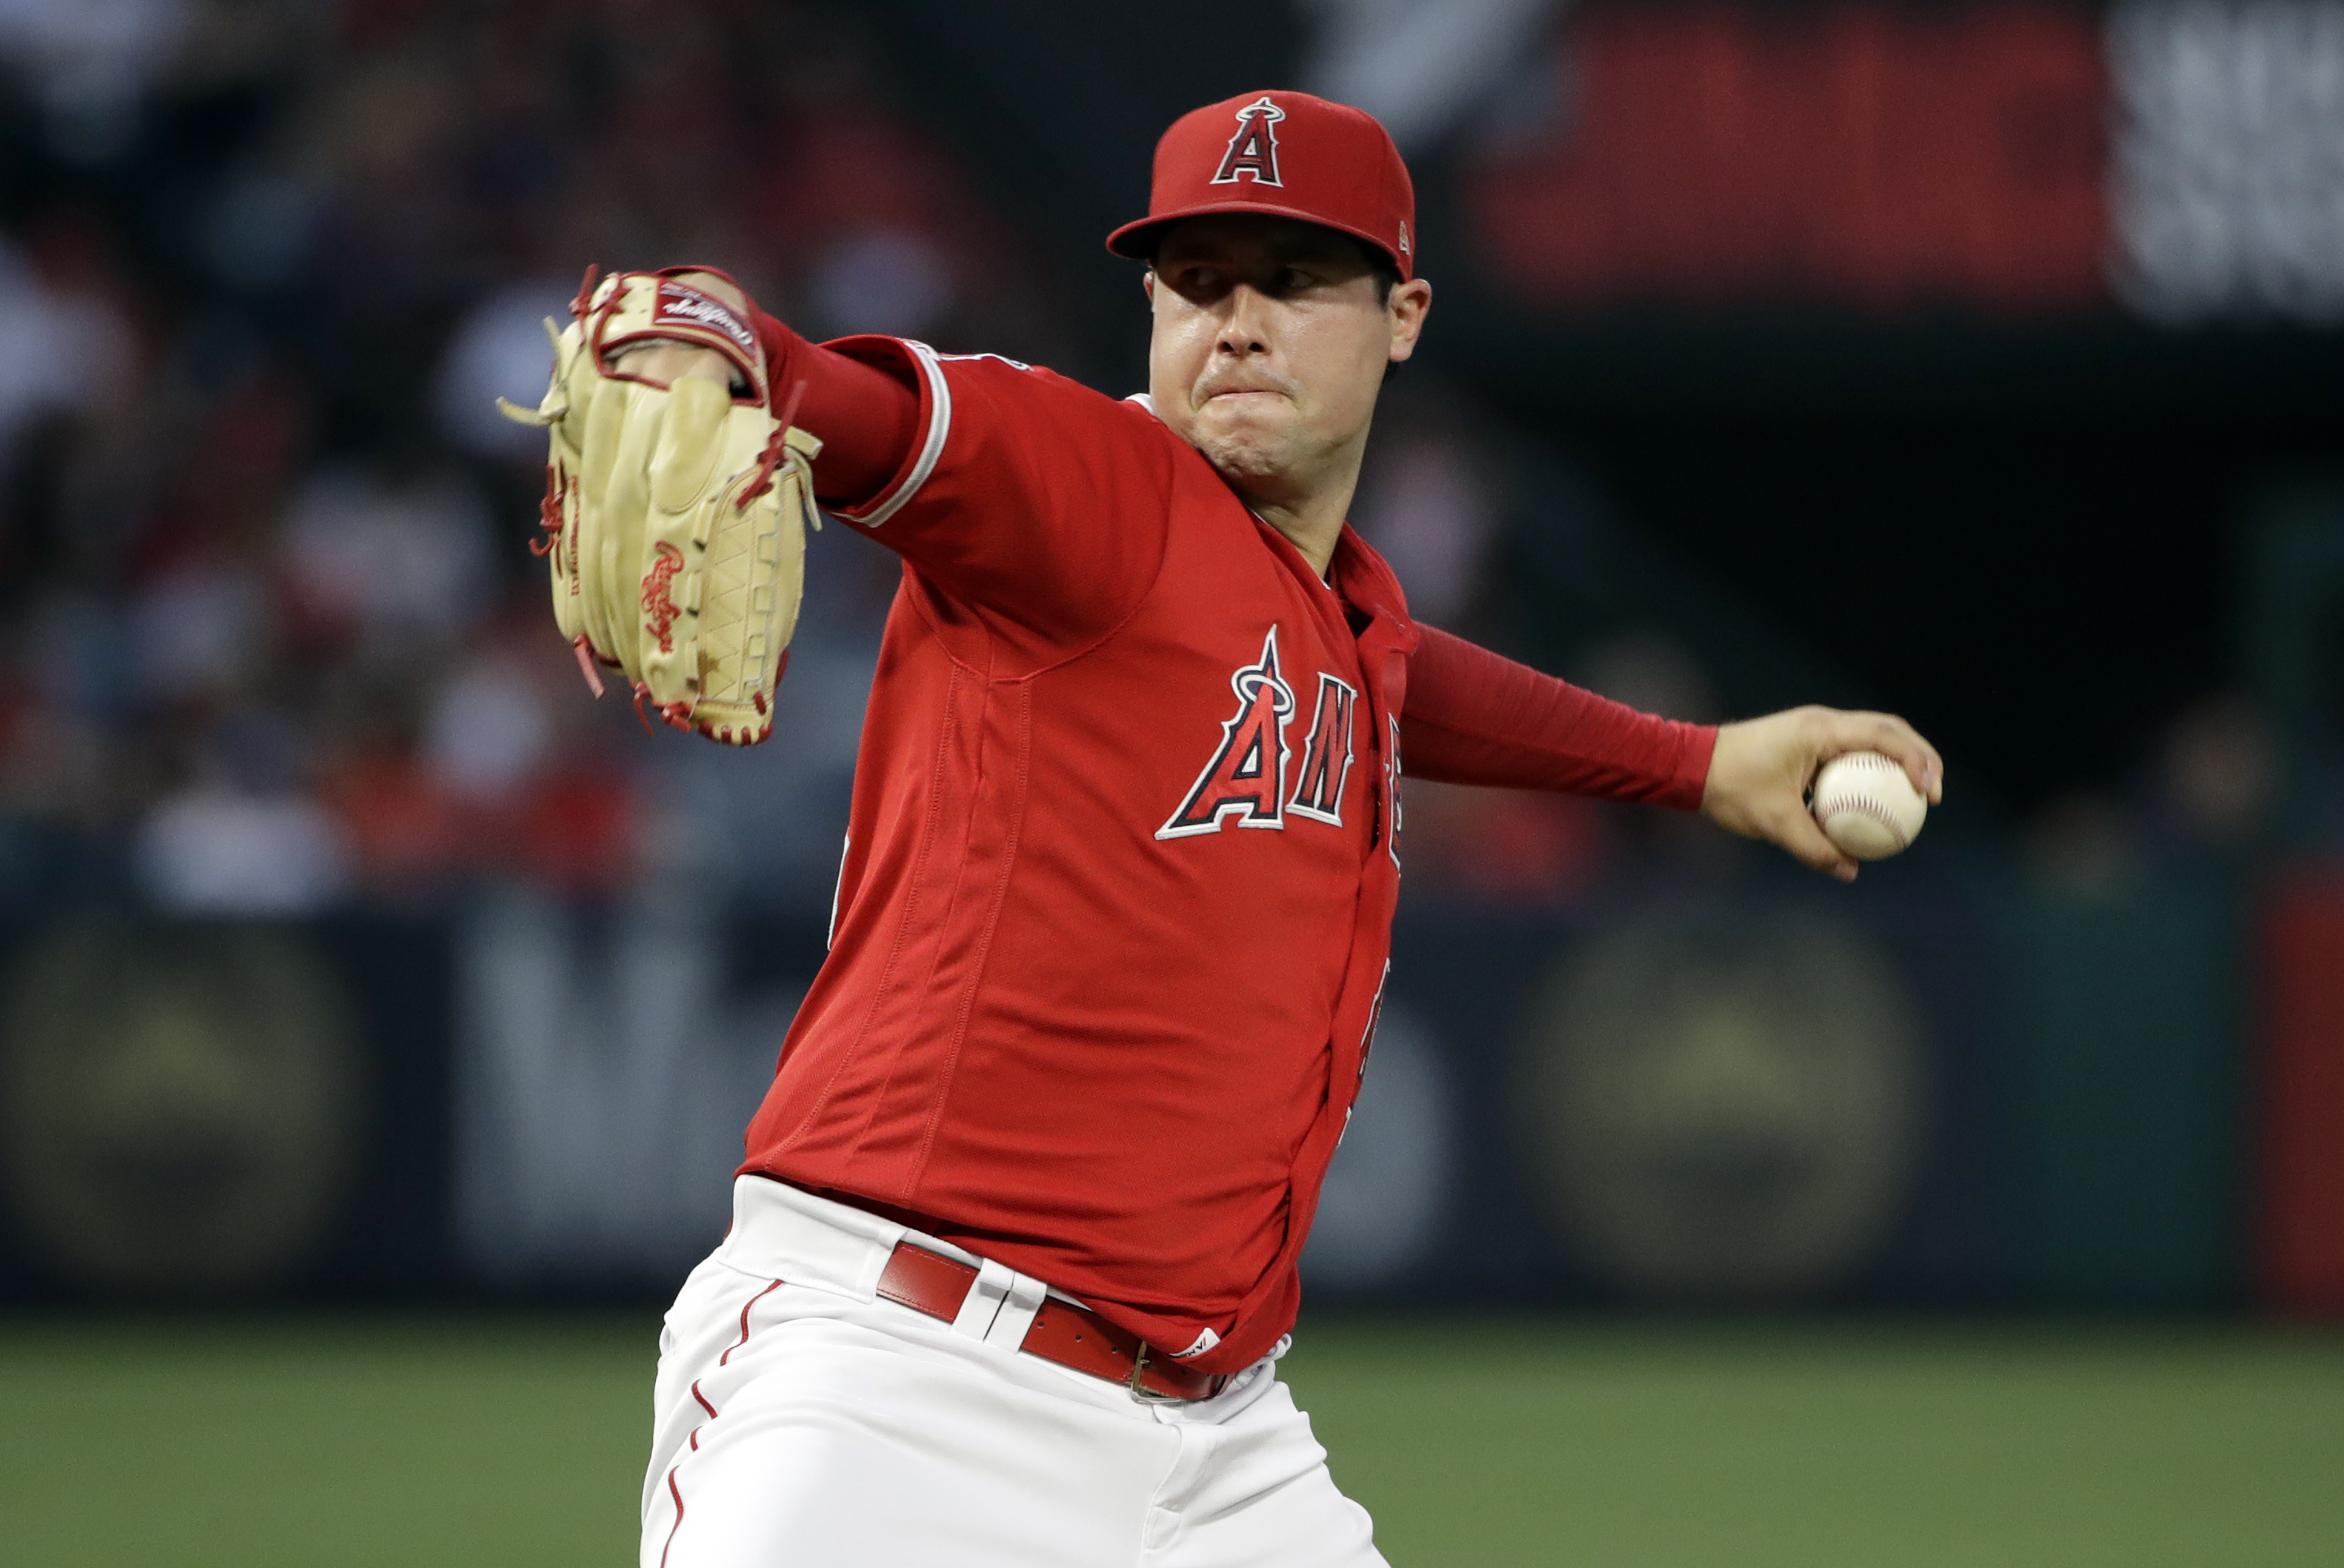 Major League Baseball will start testing for opioids and cocaine, but only players who do not cooperate with their treatment plans will be subject to discipline, as part of changes announced Thursday, Dec. 12, 2019, to the joint drug agreement between MLB and the players' association. The move comes after the death of Angels pitcher Tyler Skaggs.